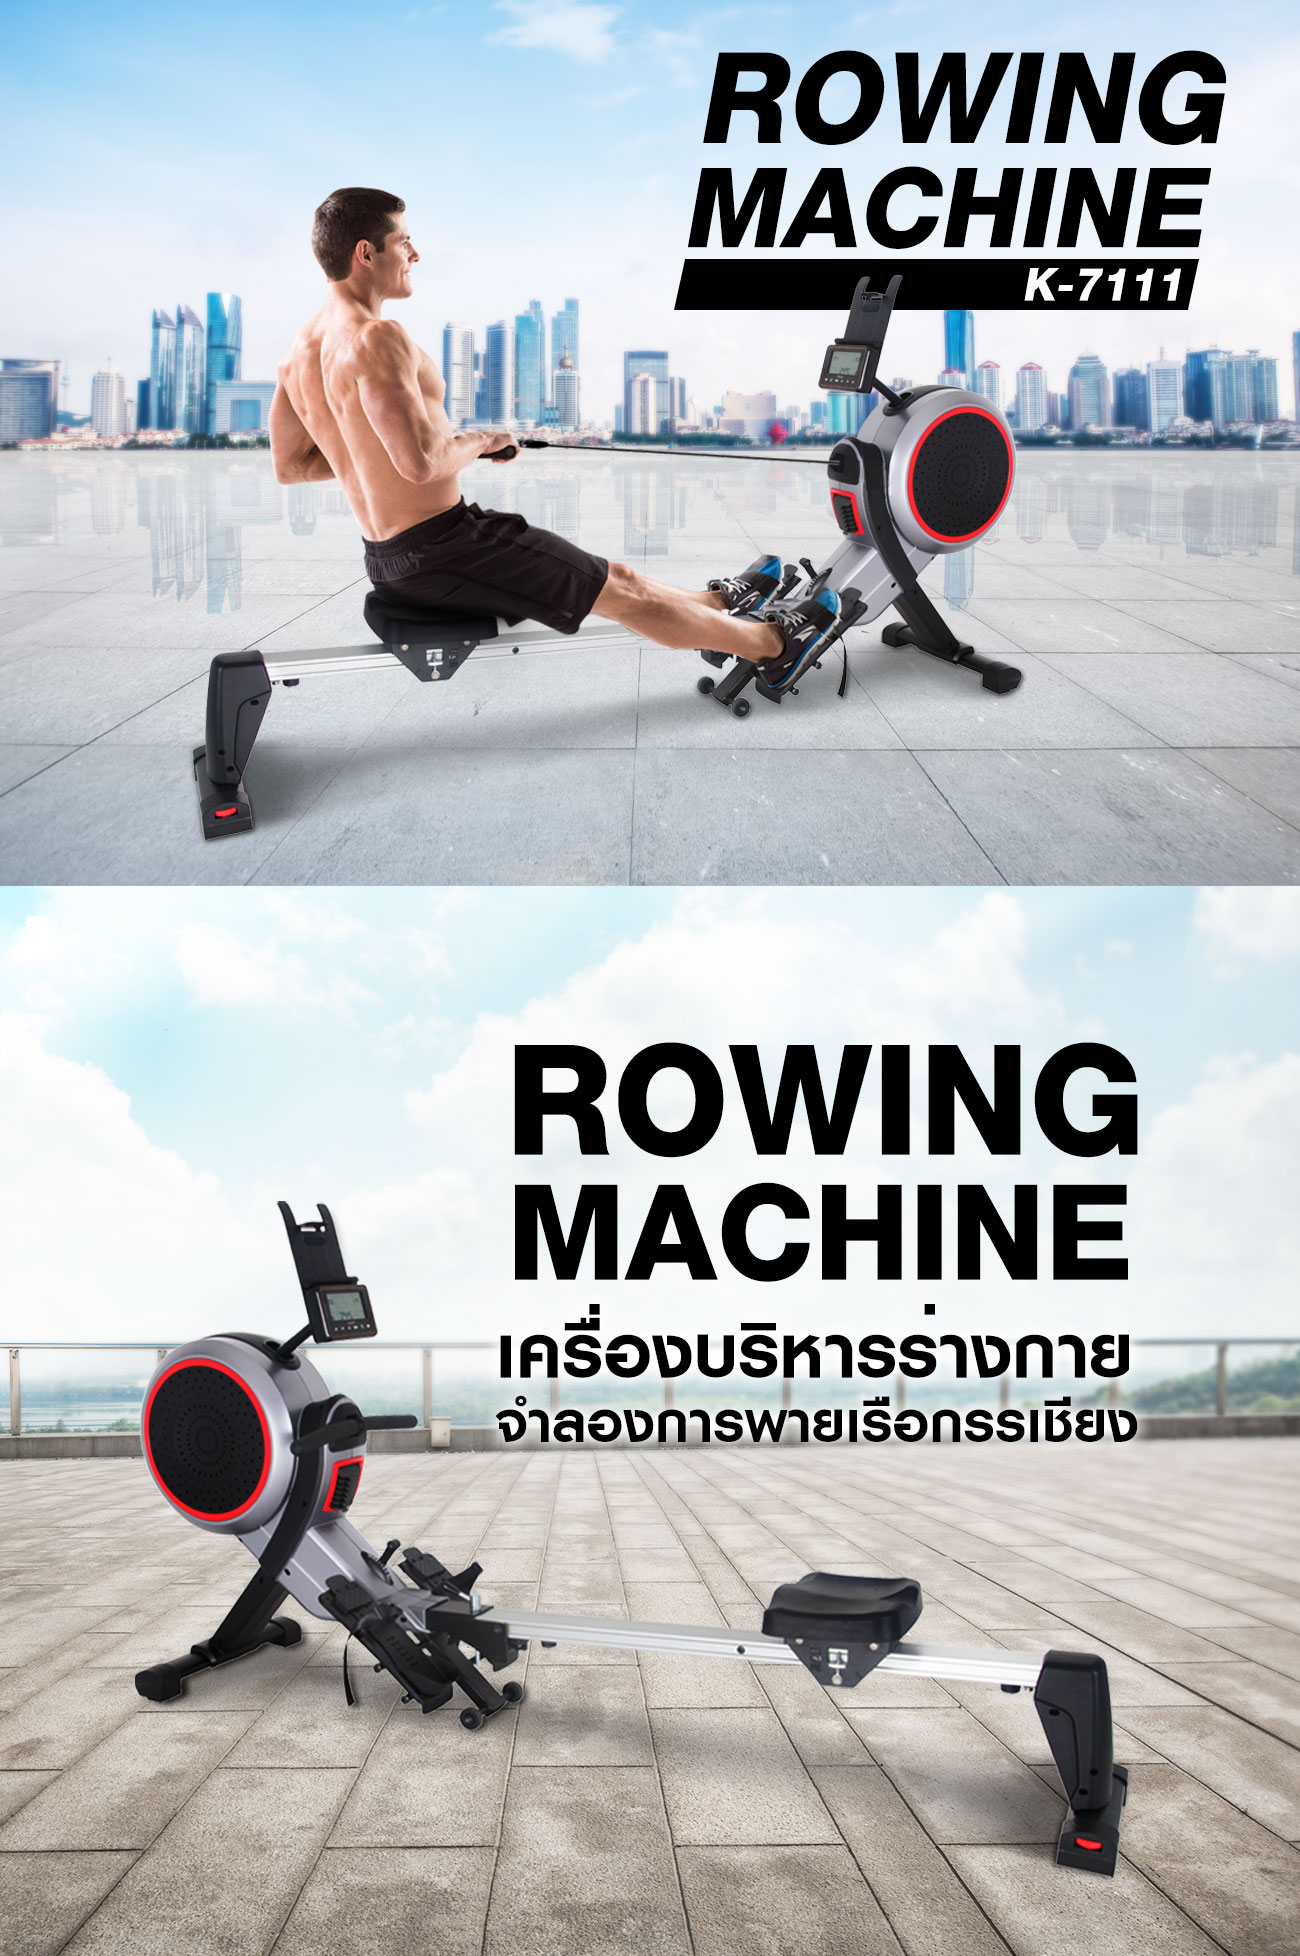 Rowing Machine K-7111